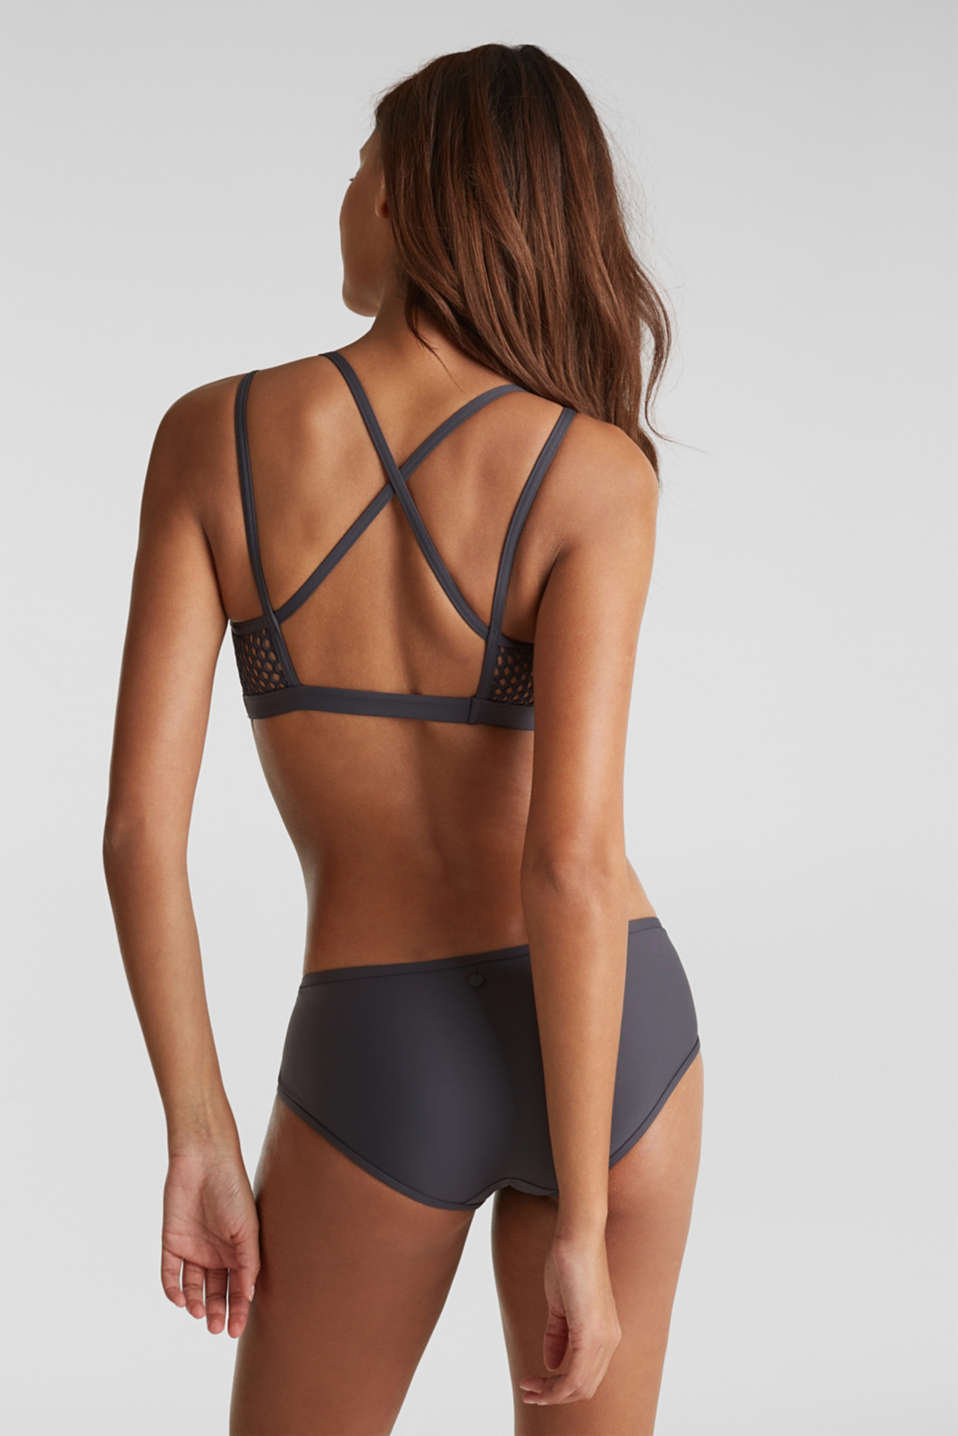 Padded non-wired bikini top with mesh details, ANTHRACITE, detail image number 1